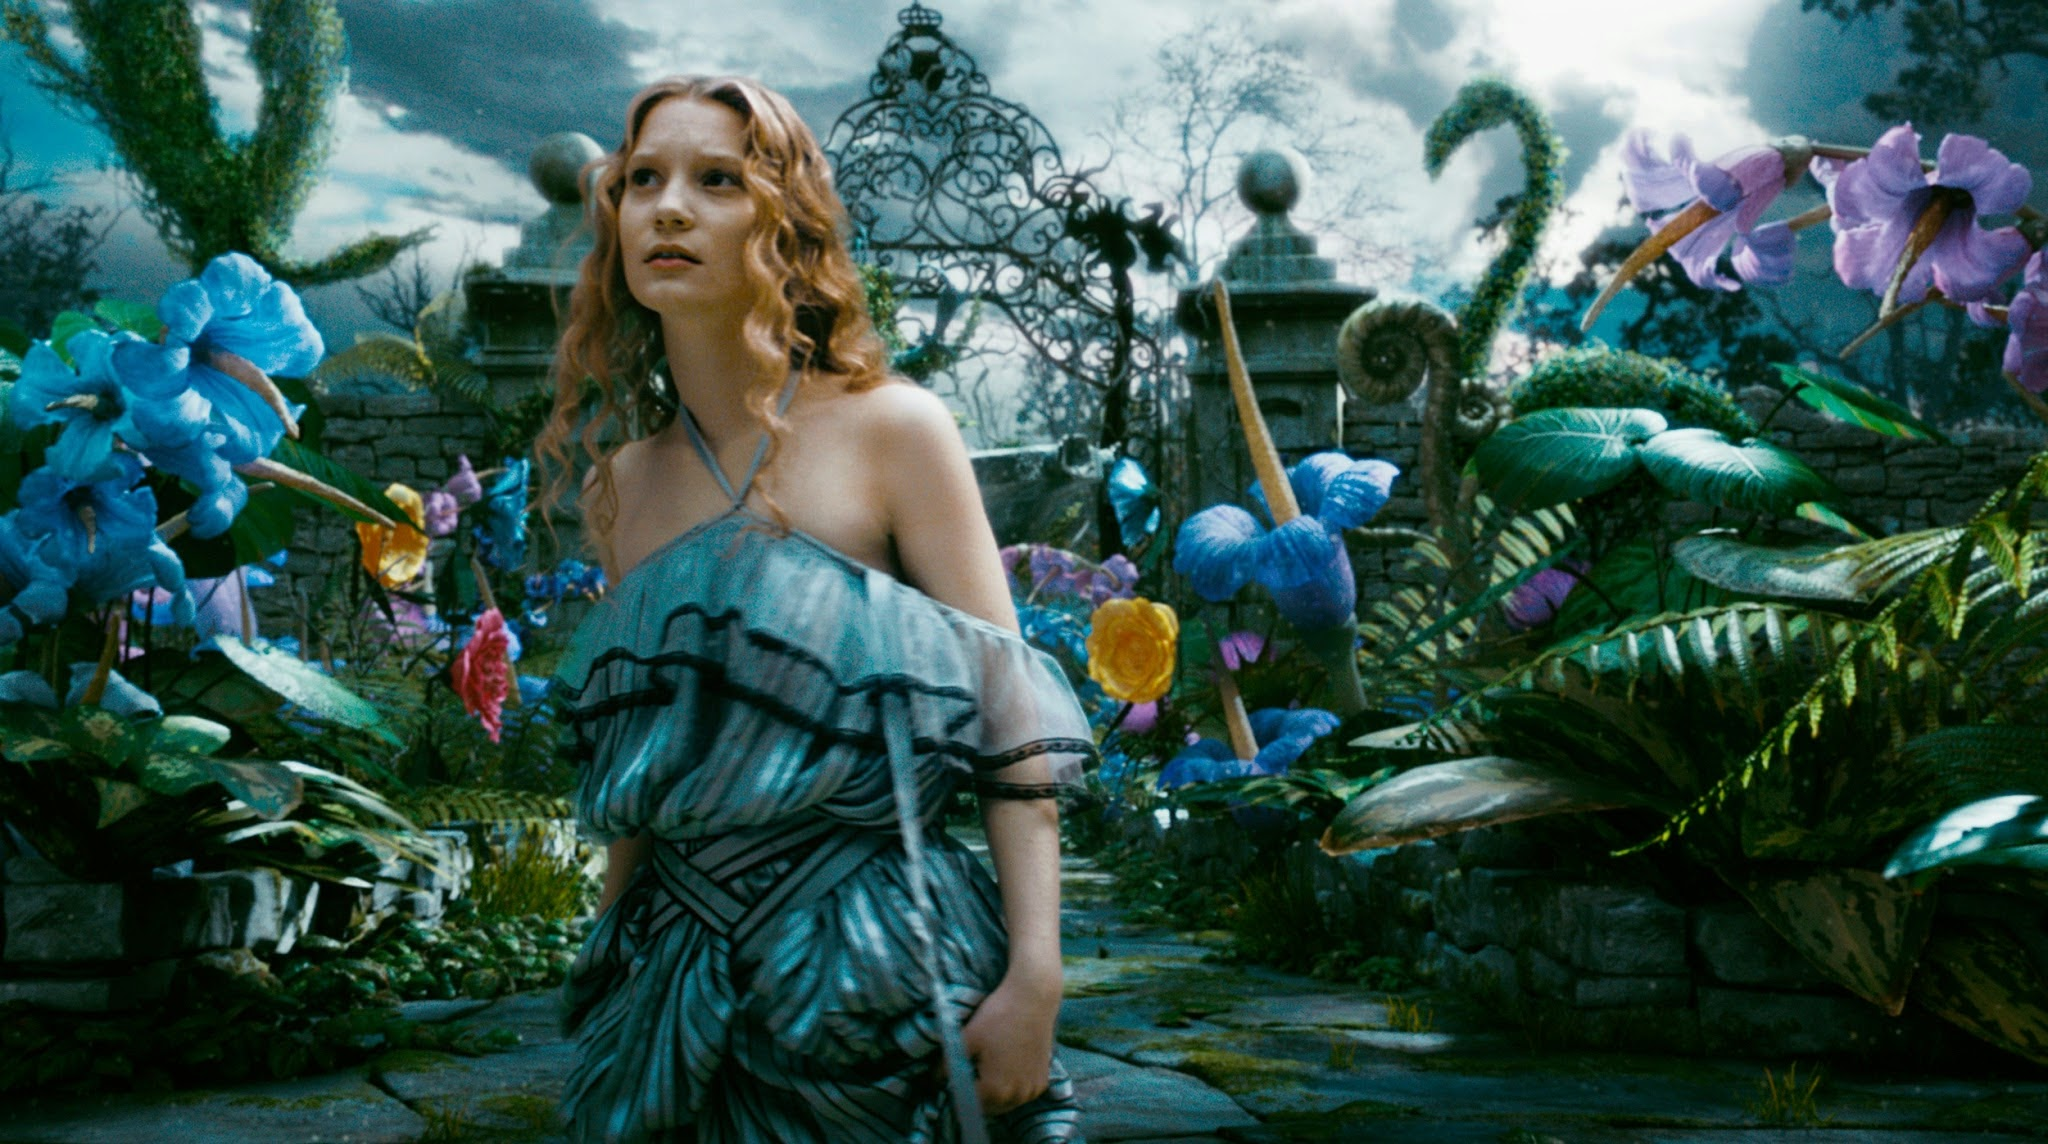 alice-in-wonderland-movie-image-25